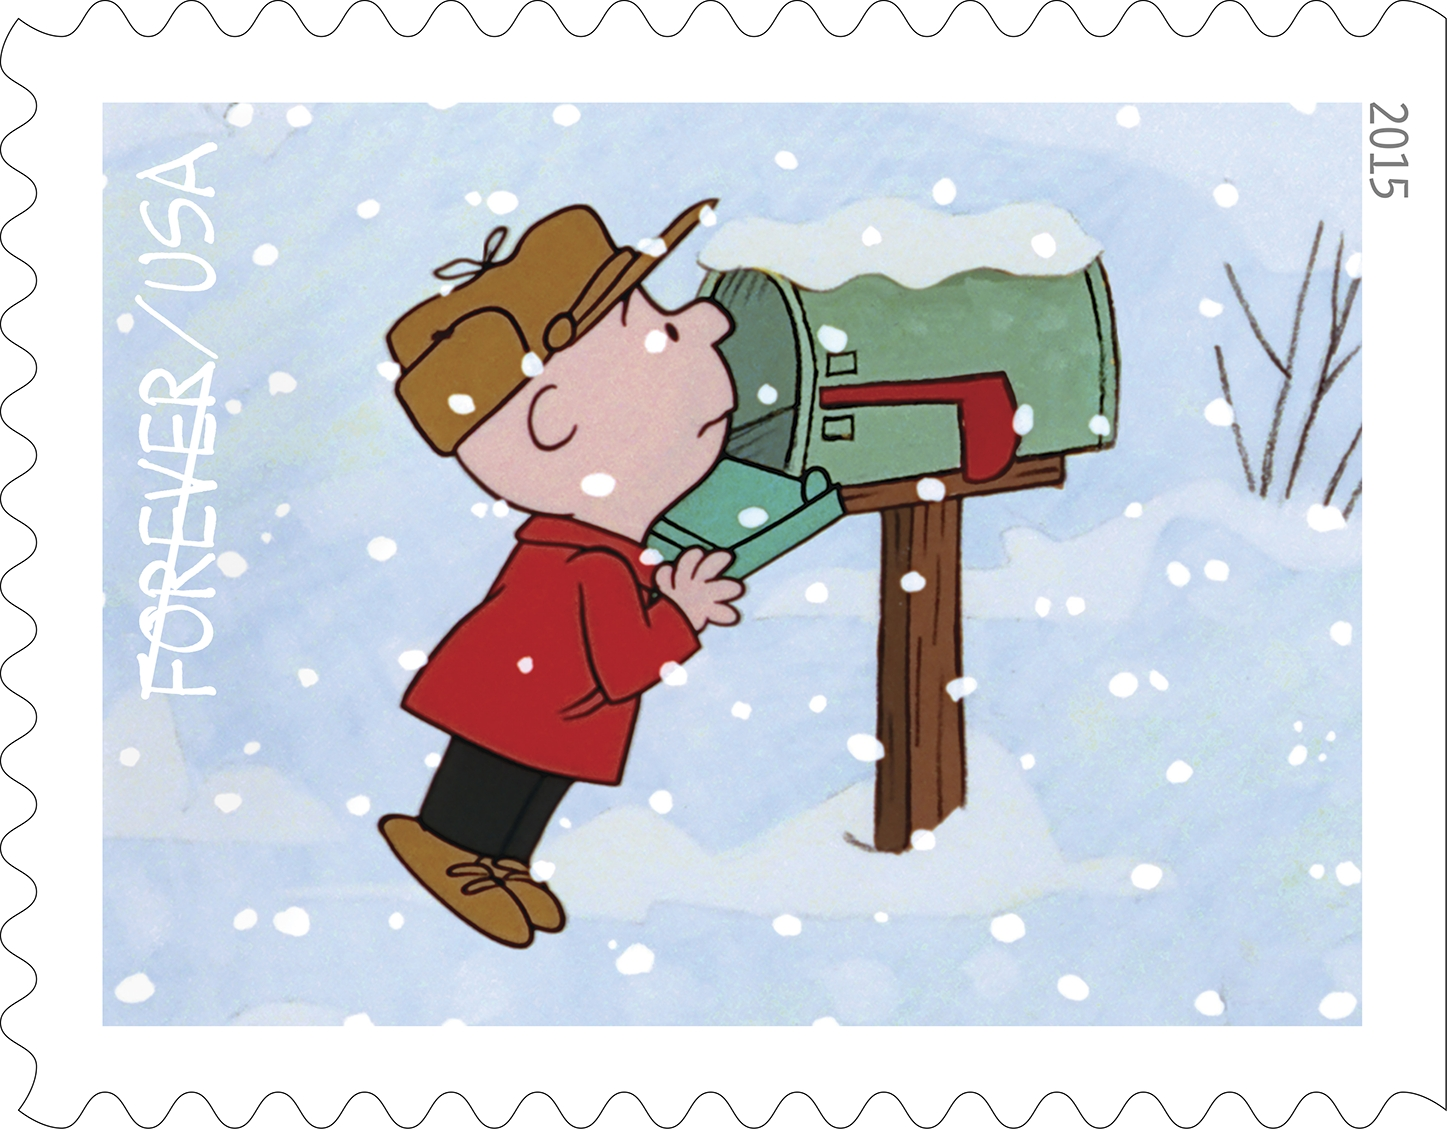 yes virginia there is a santa claus and the postal service can help you prove it when santa replies to your childs letter complete with a north pole